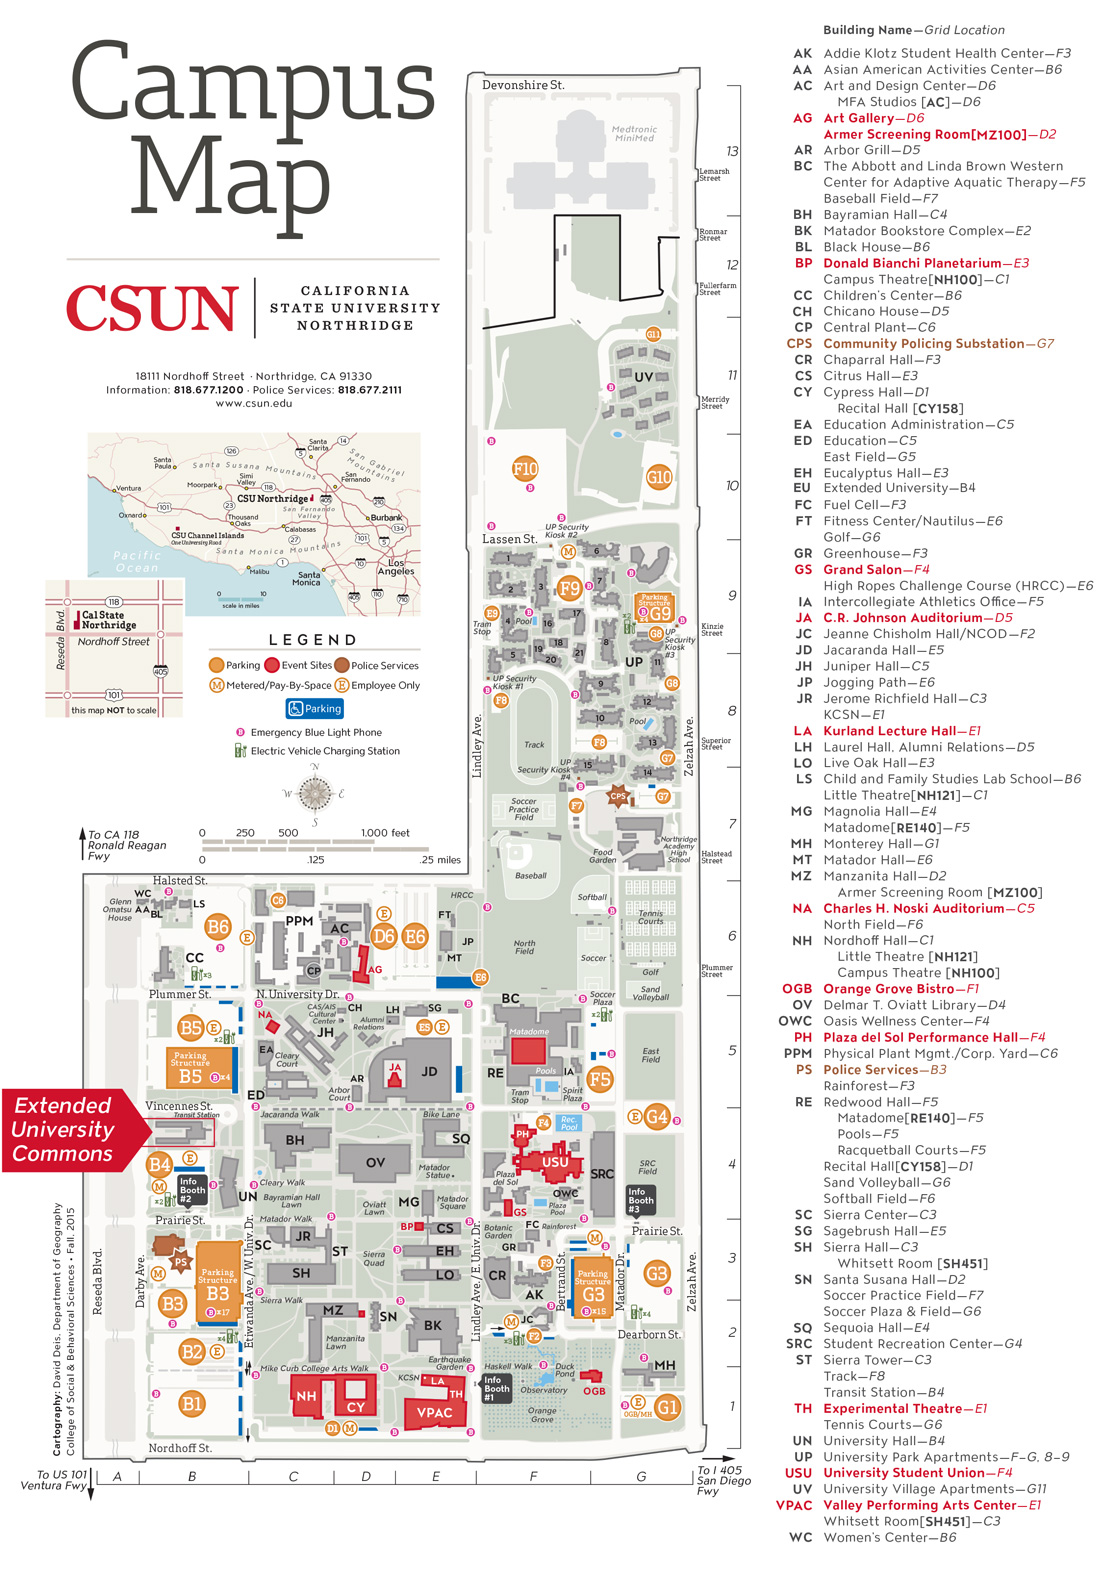 Map of CSUN campus with Extended University Building highligted.